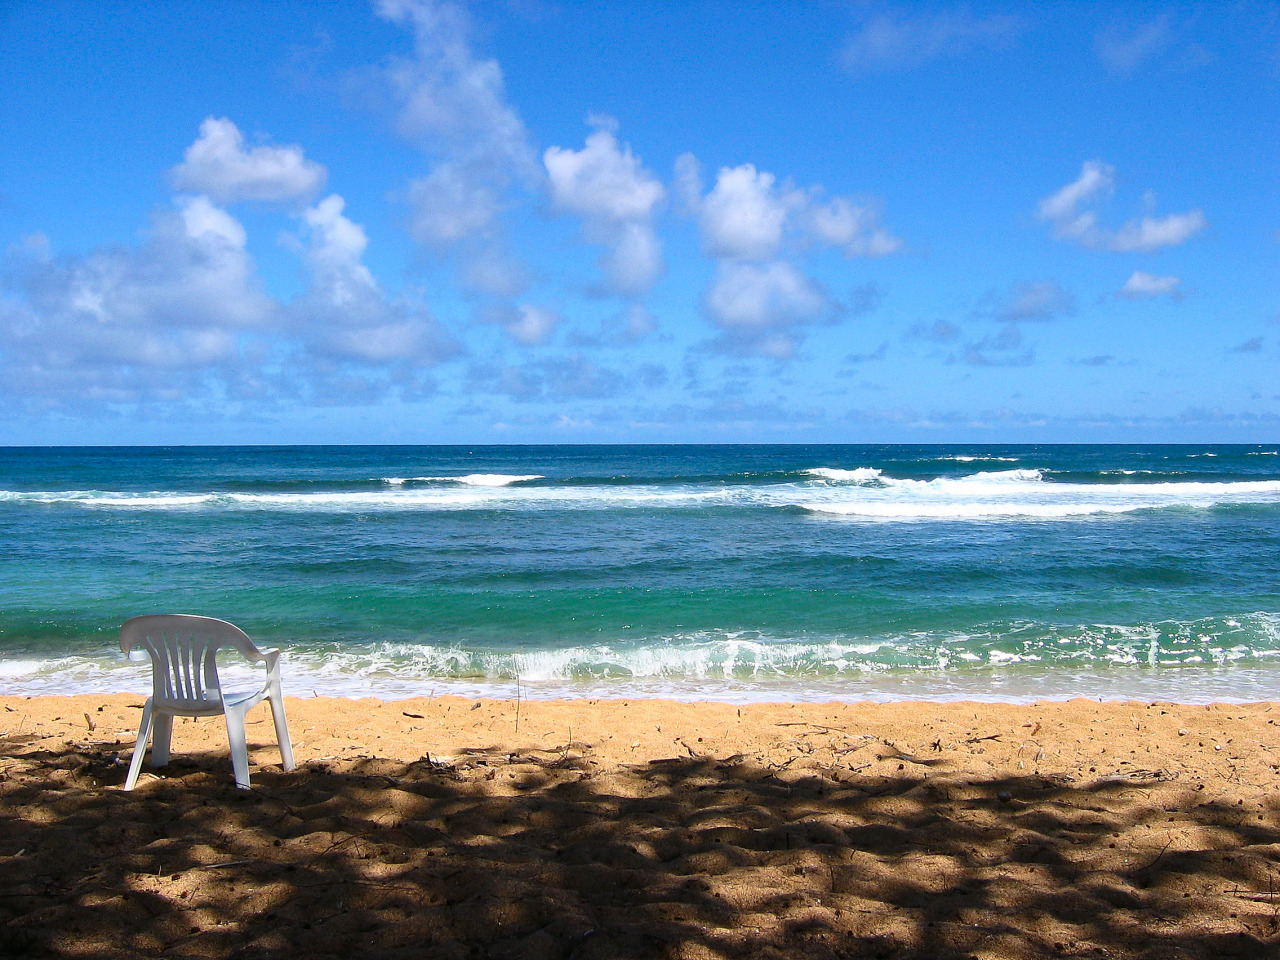 Blue waves crashing on the beach in Kauai, Hawaii